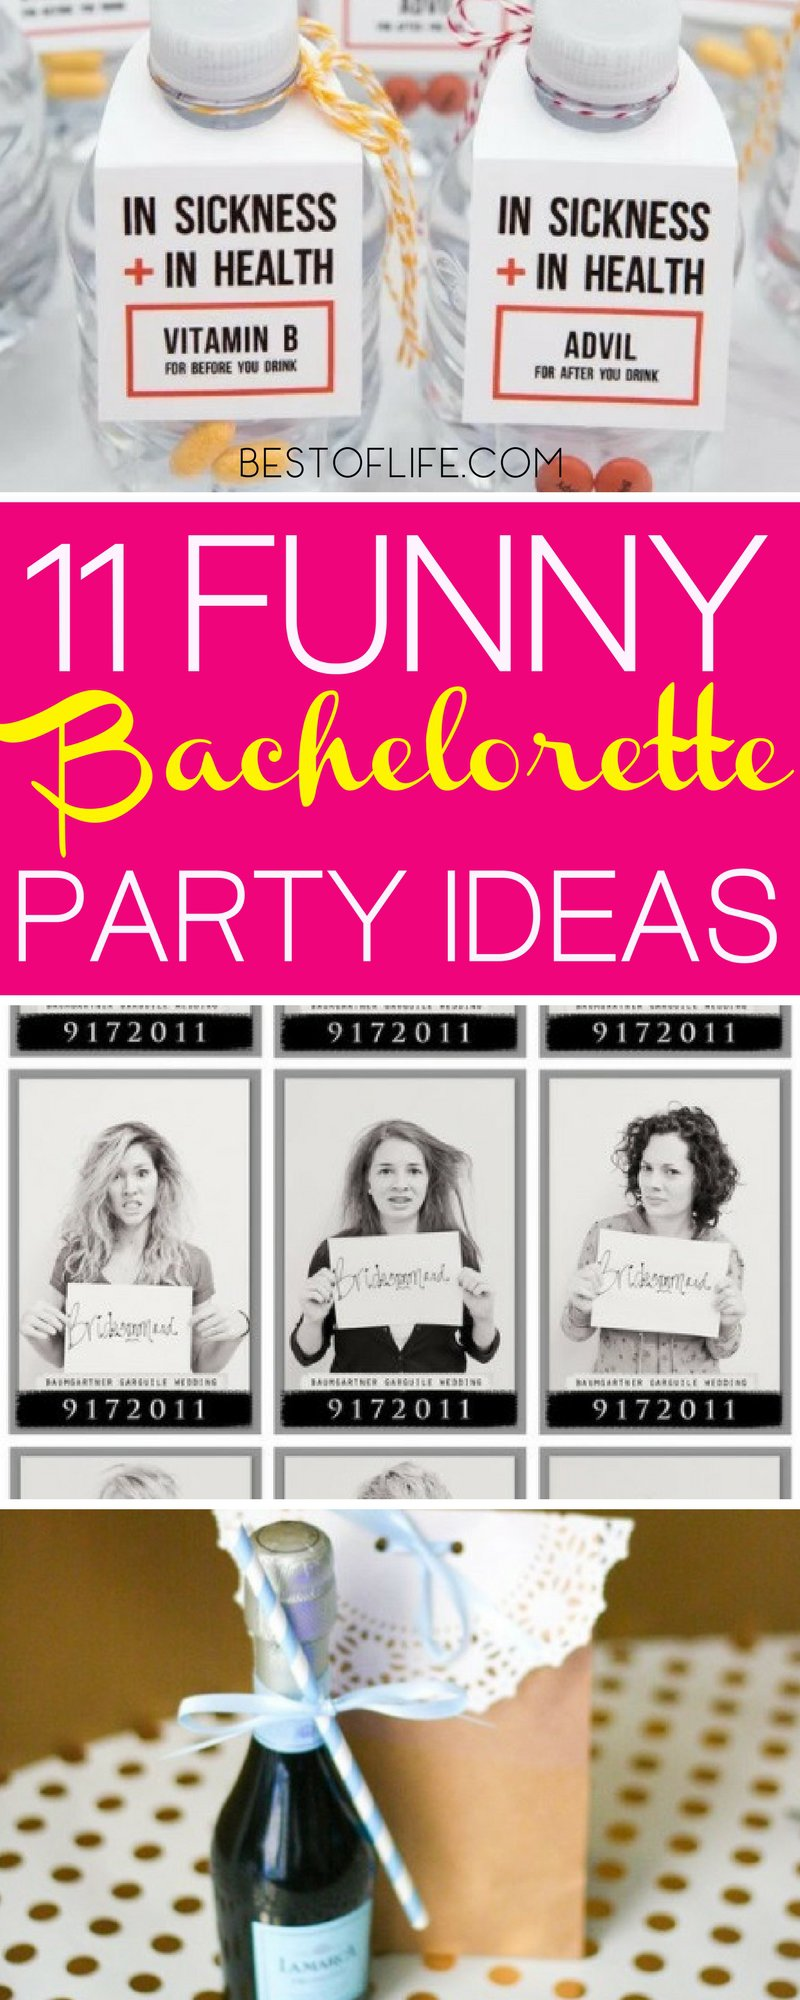 Celebrate the bride to be with a bachelorette party she will never forget! These hilarious bachelorette party ideas will help you plan the best party! Bachelorette Party Games | Bachelorette Party Games Scavenger Hunt | Bachelorette Party Ideas on a Budget | Bachelorette Party Games Clean | Ladies Night Games #partygames #partyideas #partyplanning #bachelorette #partyideas via @thebestoflife